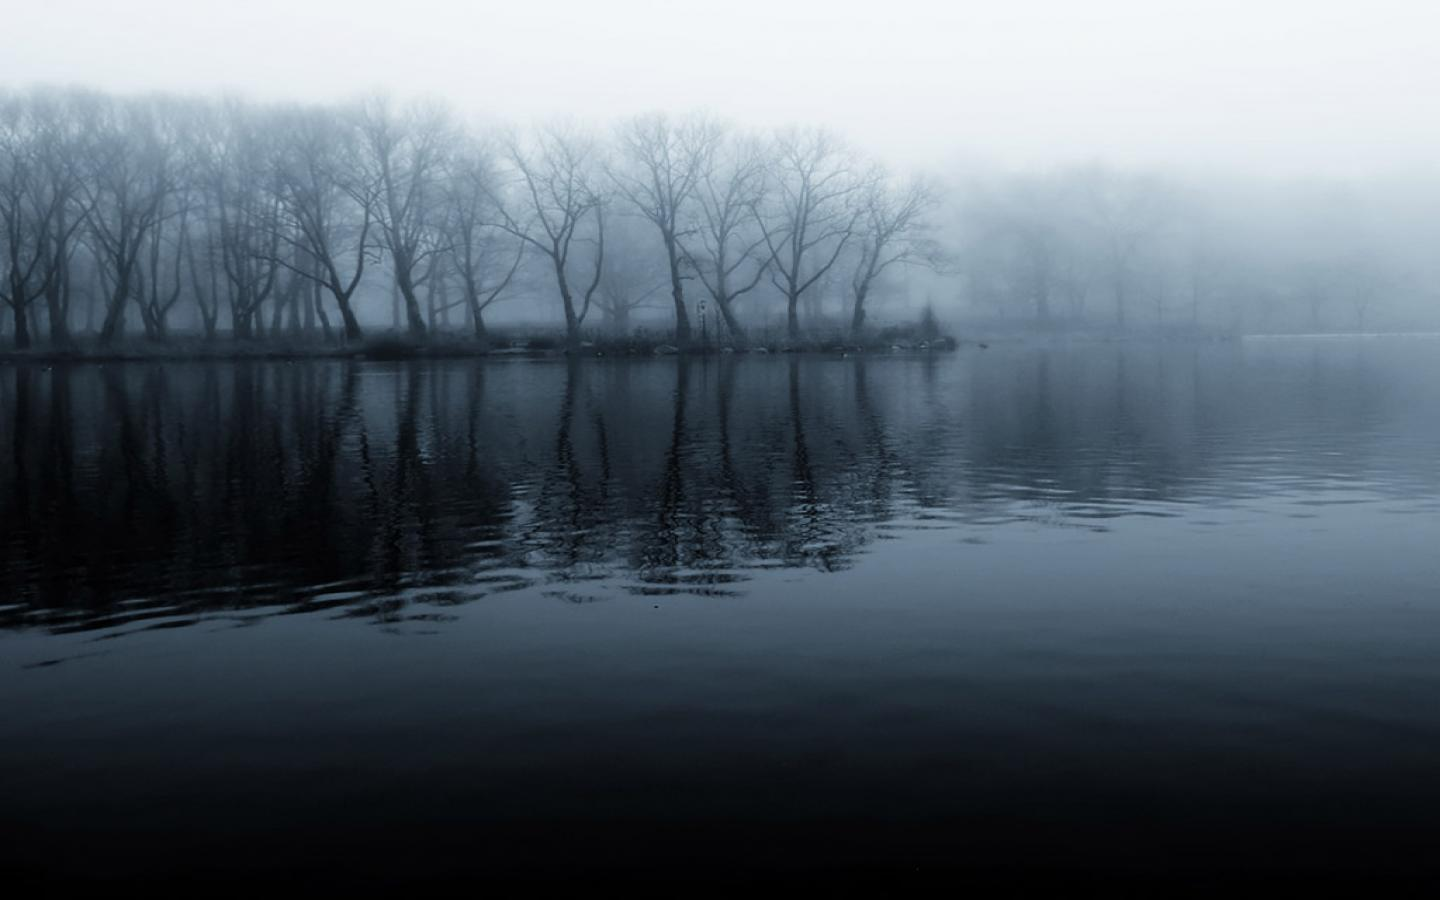 Free Download HD Foggy Morning in lake 1024x768 - Download FREE Widescreen HD Foggy Morning in lake